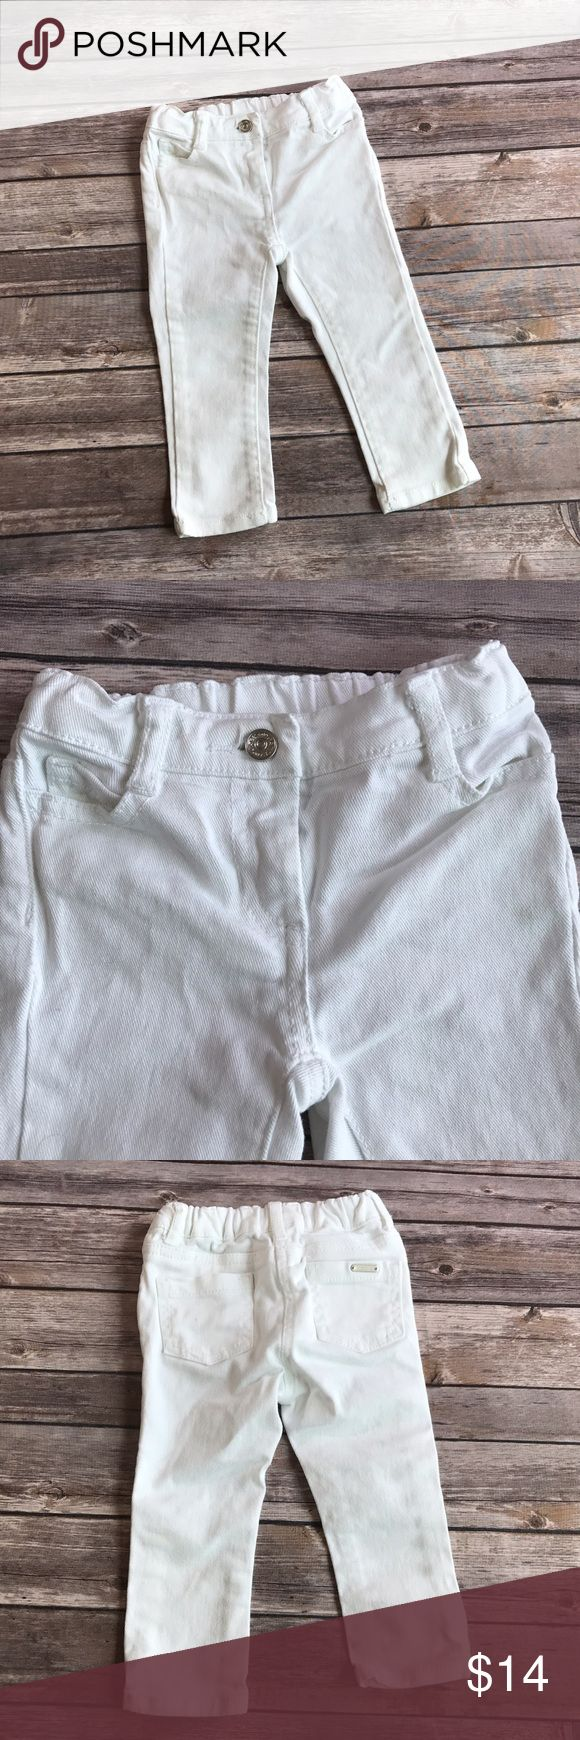 Janie And Jack White denim jeans White skinny jeans with adjustable waist band. One small spot on back pocket and on the back of one leg, shown in photos. Overall great condition and so cute! Janie and Jack Bottoms Jeans